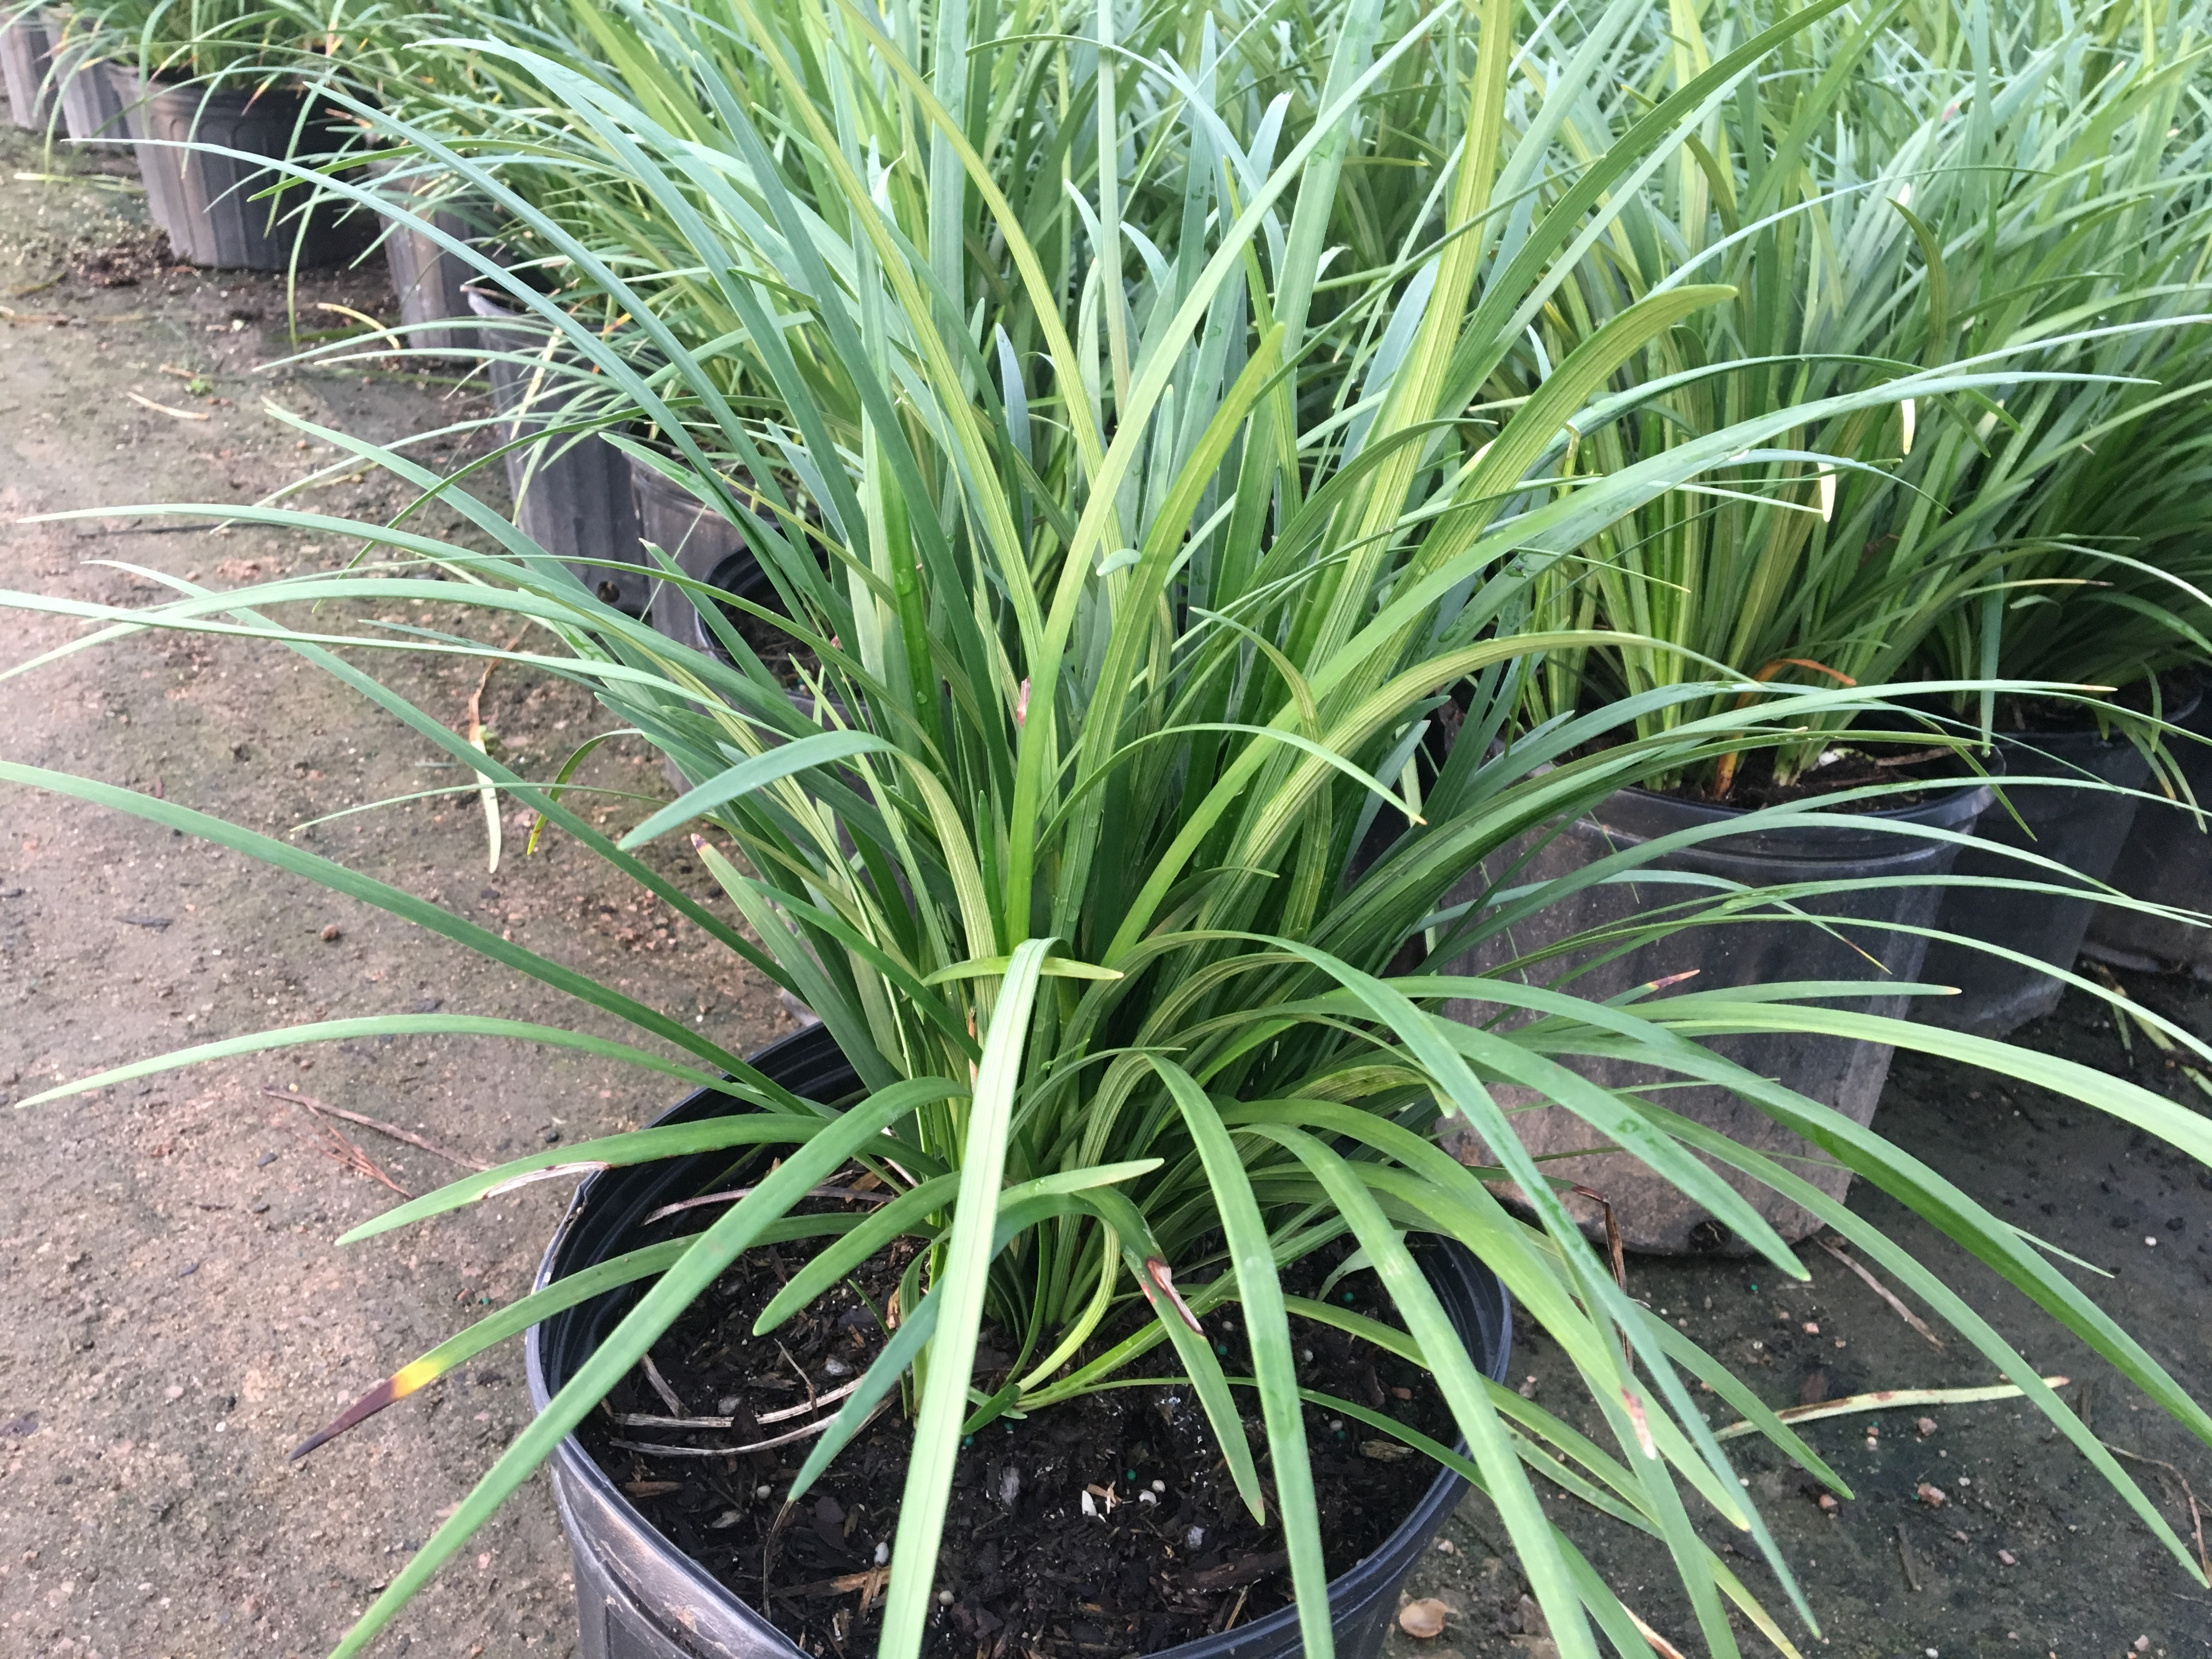 Giant Liriope Southwest Nursery Wholesale Landscaping Supplies